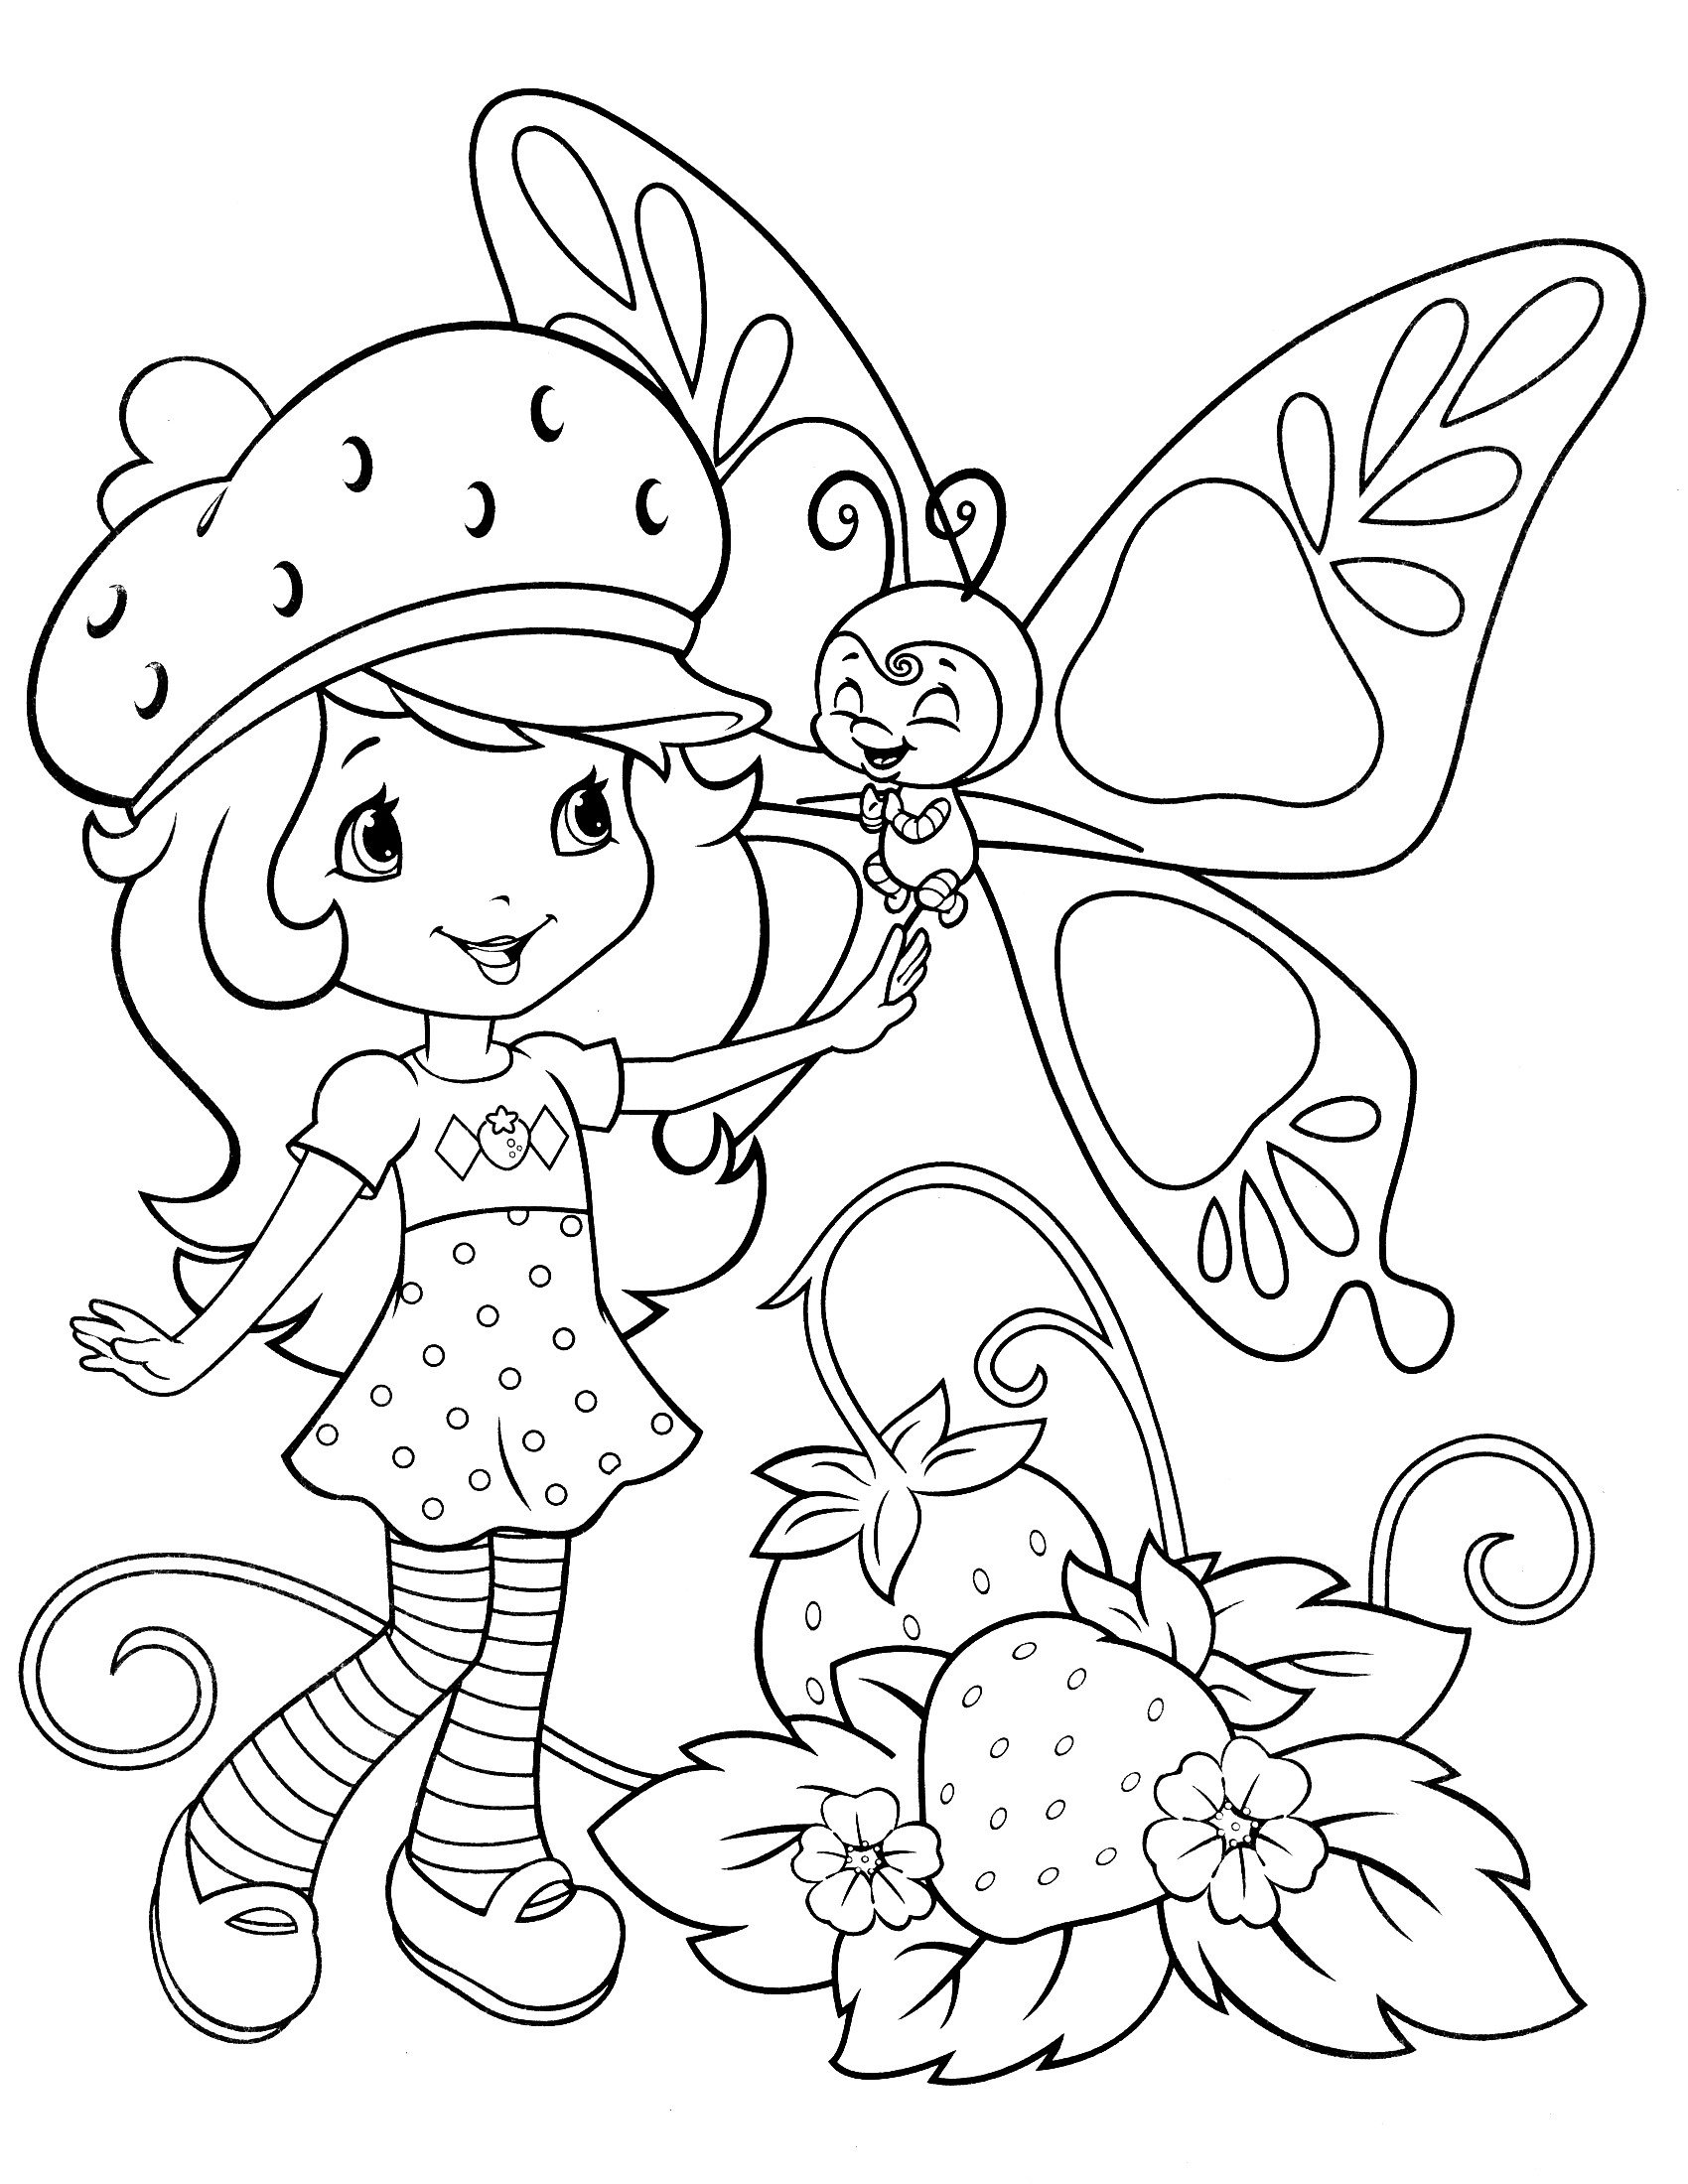 strawberry shortcake pictures to color strawberry shortcake 33 coloringcolorcom color pictures strawberry shortcake to